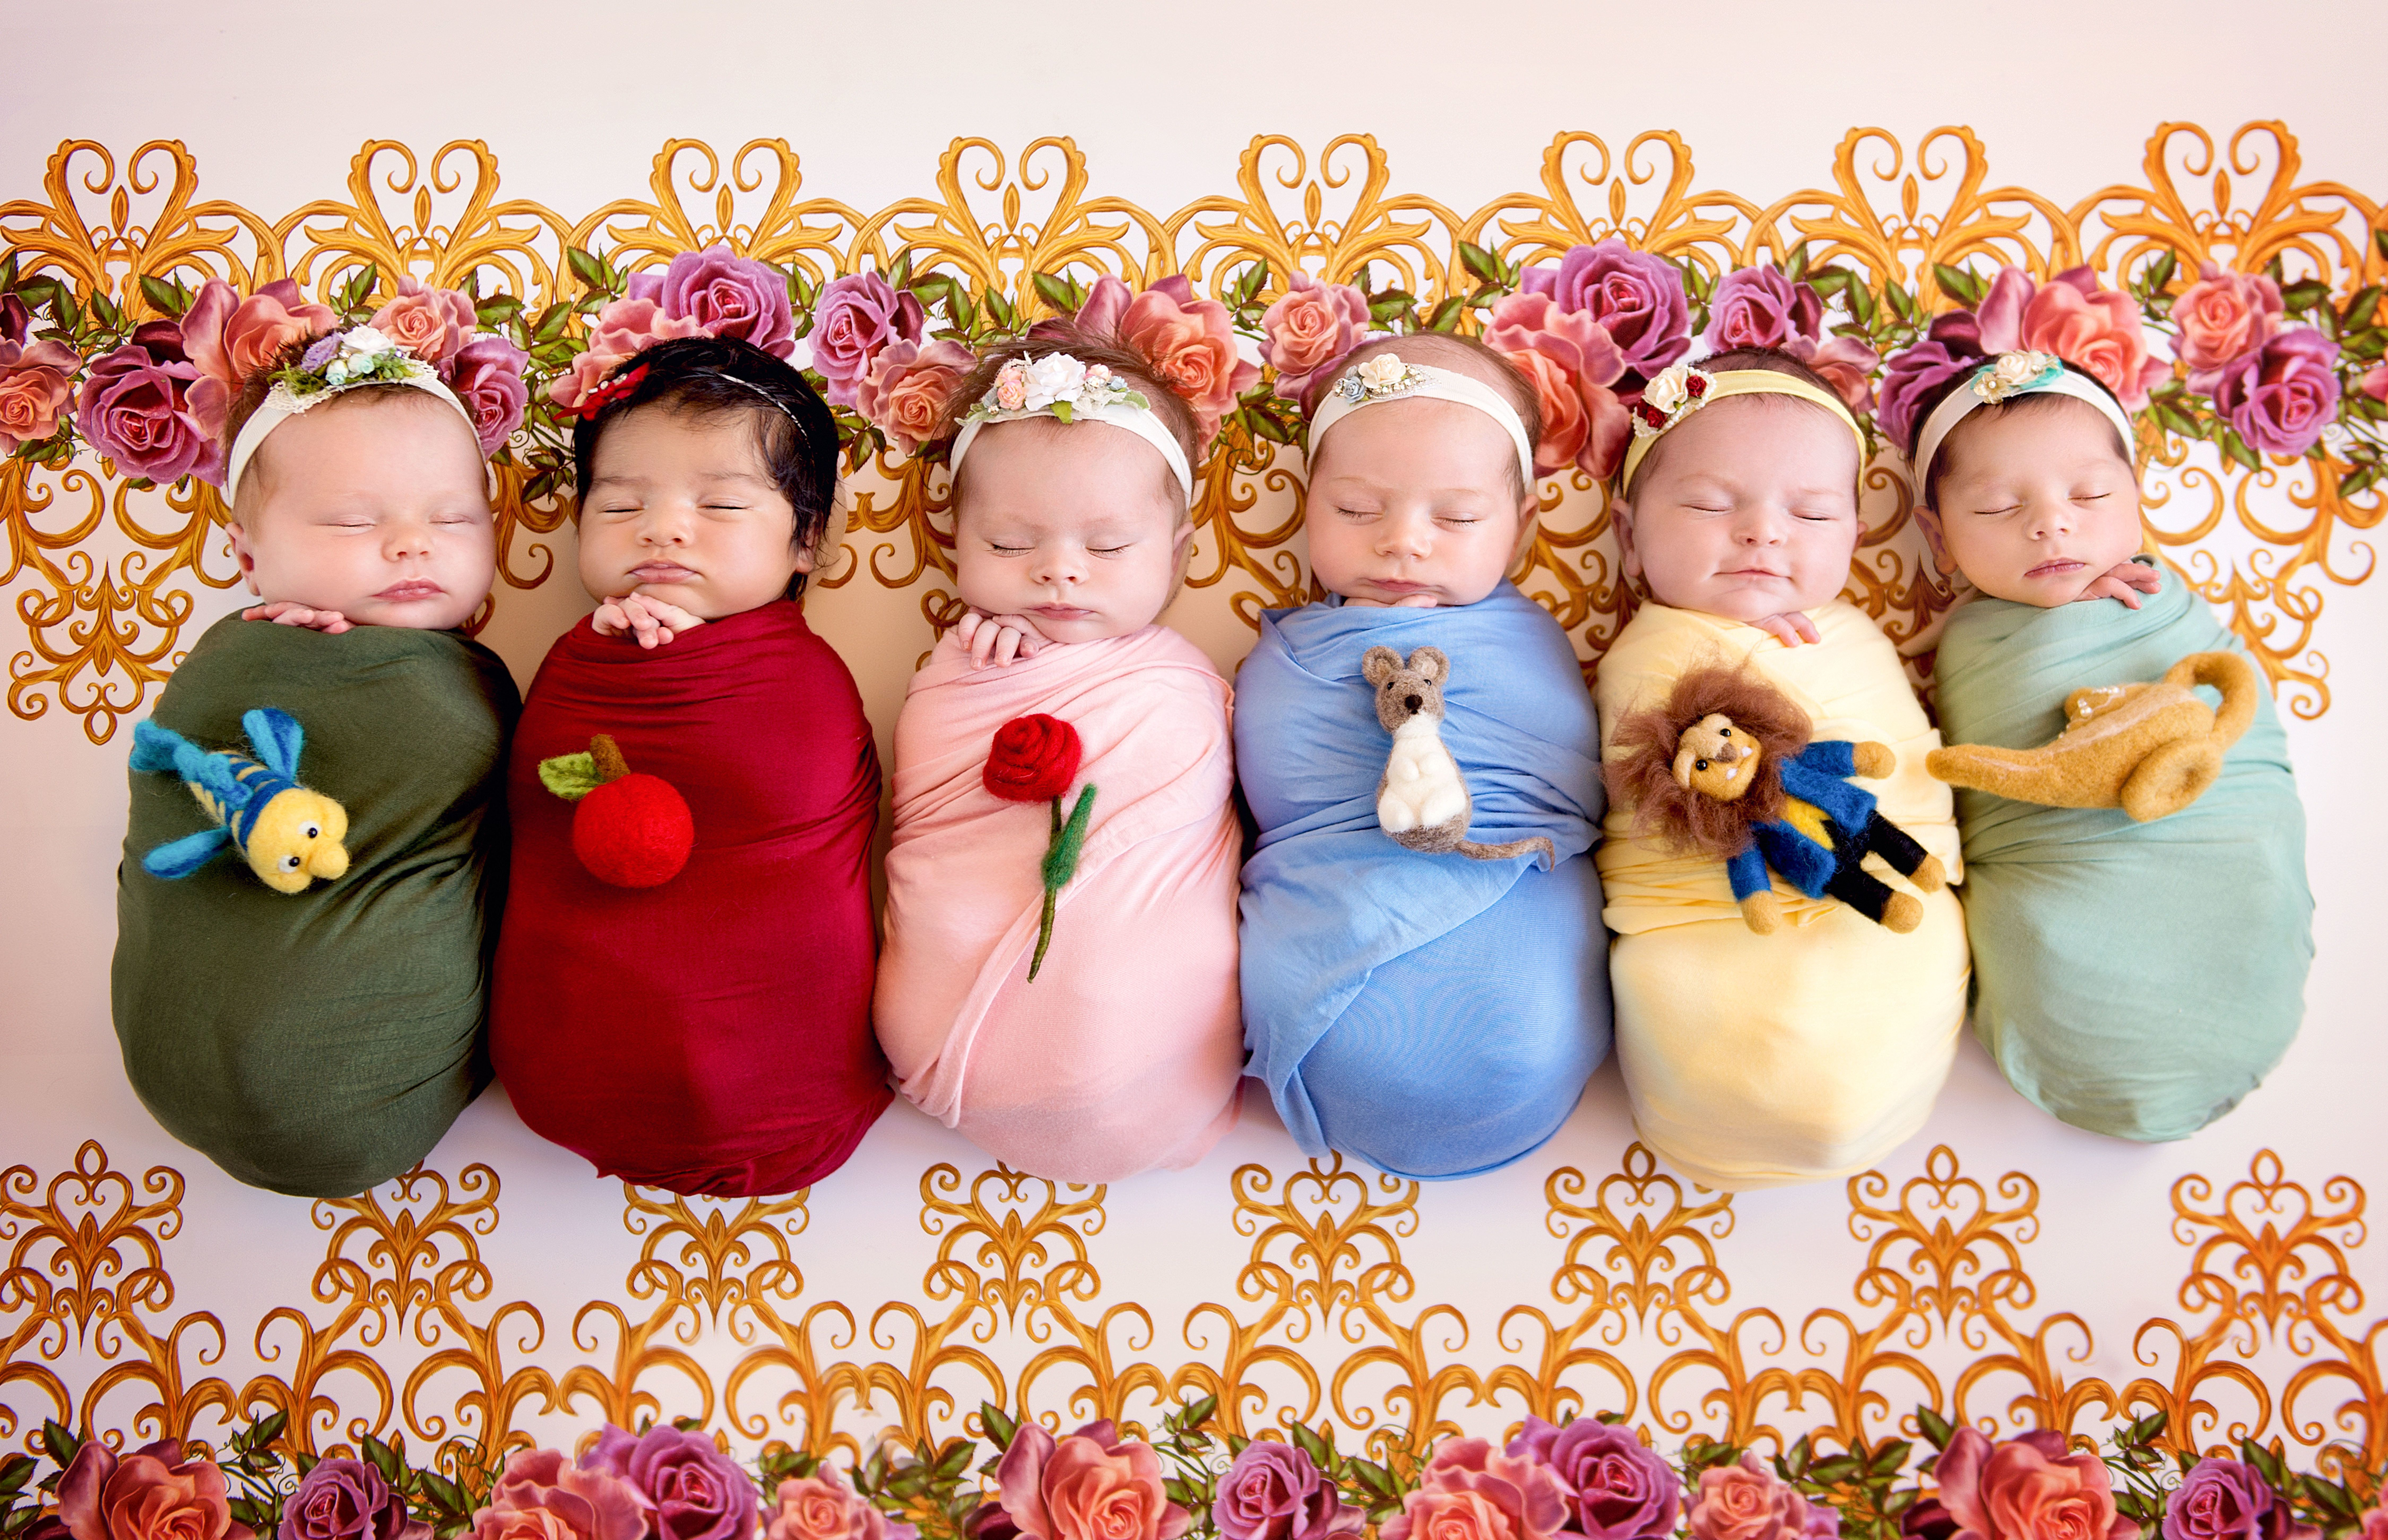 In 2017, photographer Karen Marie and these six babies took the internet by storm with their Disney princesspics.